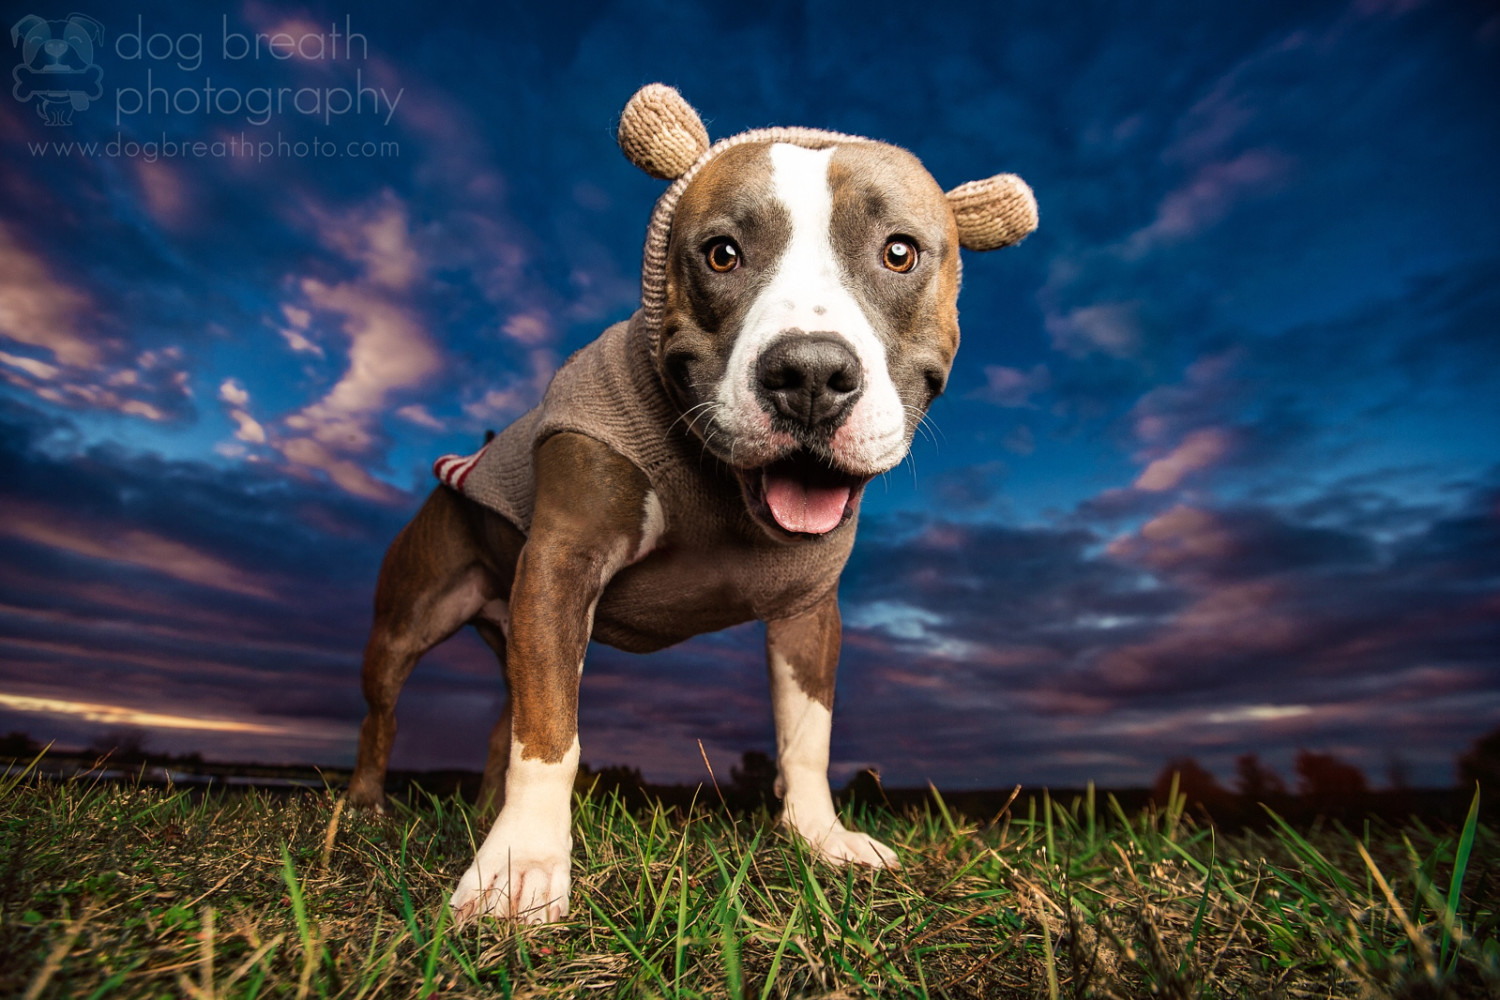 Meet One of the Best Dog Photographers on 500px... and in the World